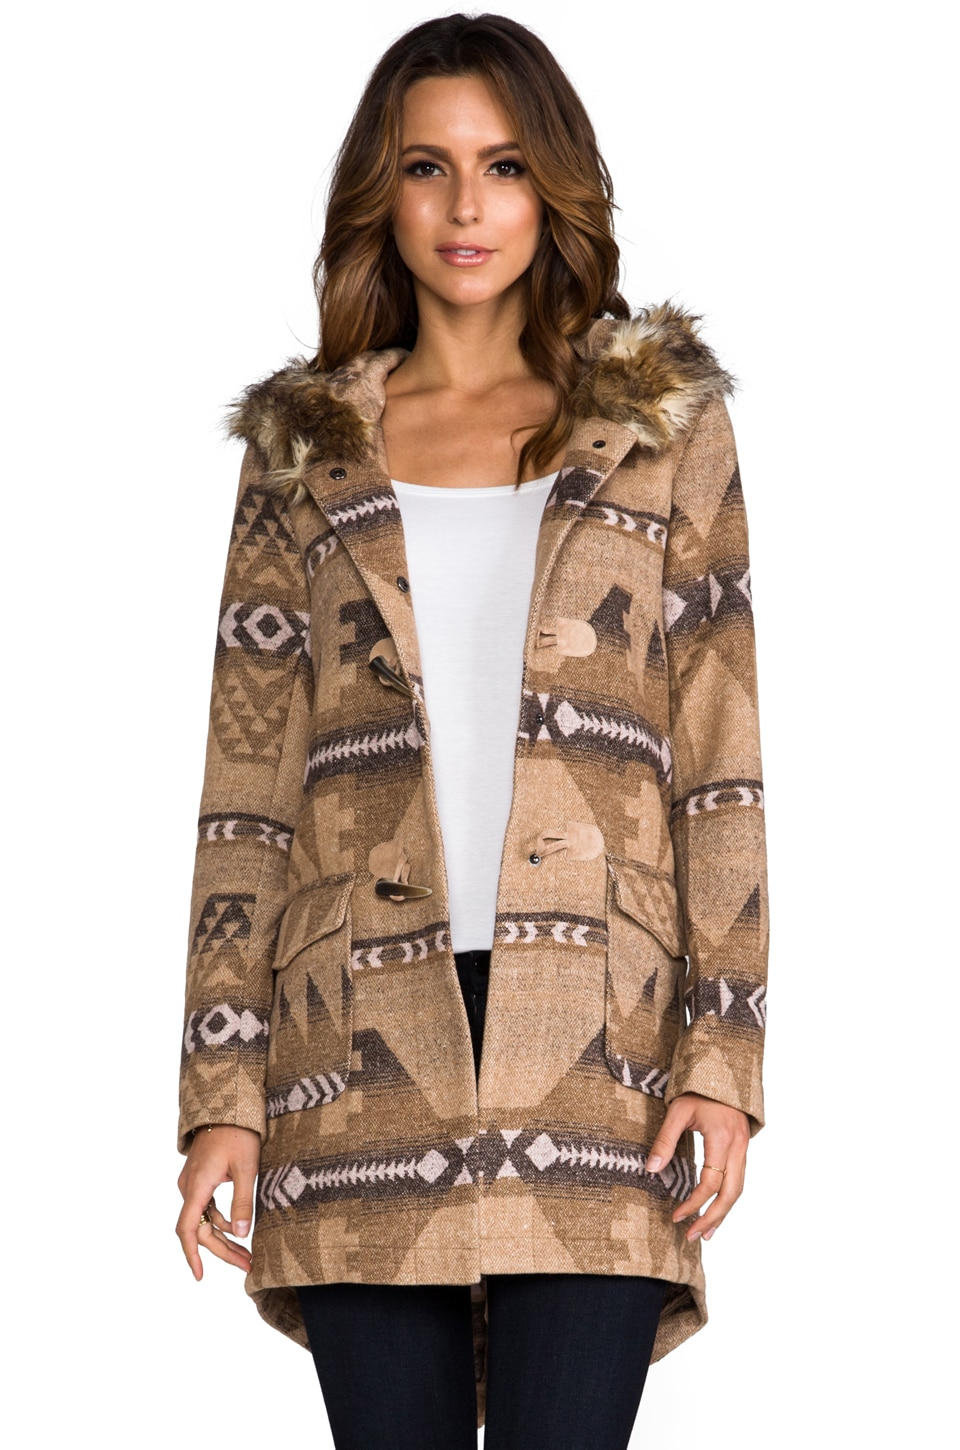 BB Dakota Davina Faux Coyote Fur Trim Patterned Coat in Light Camel Beige